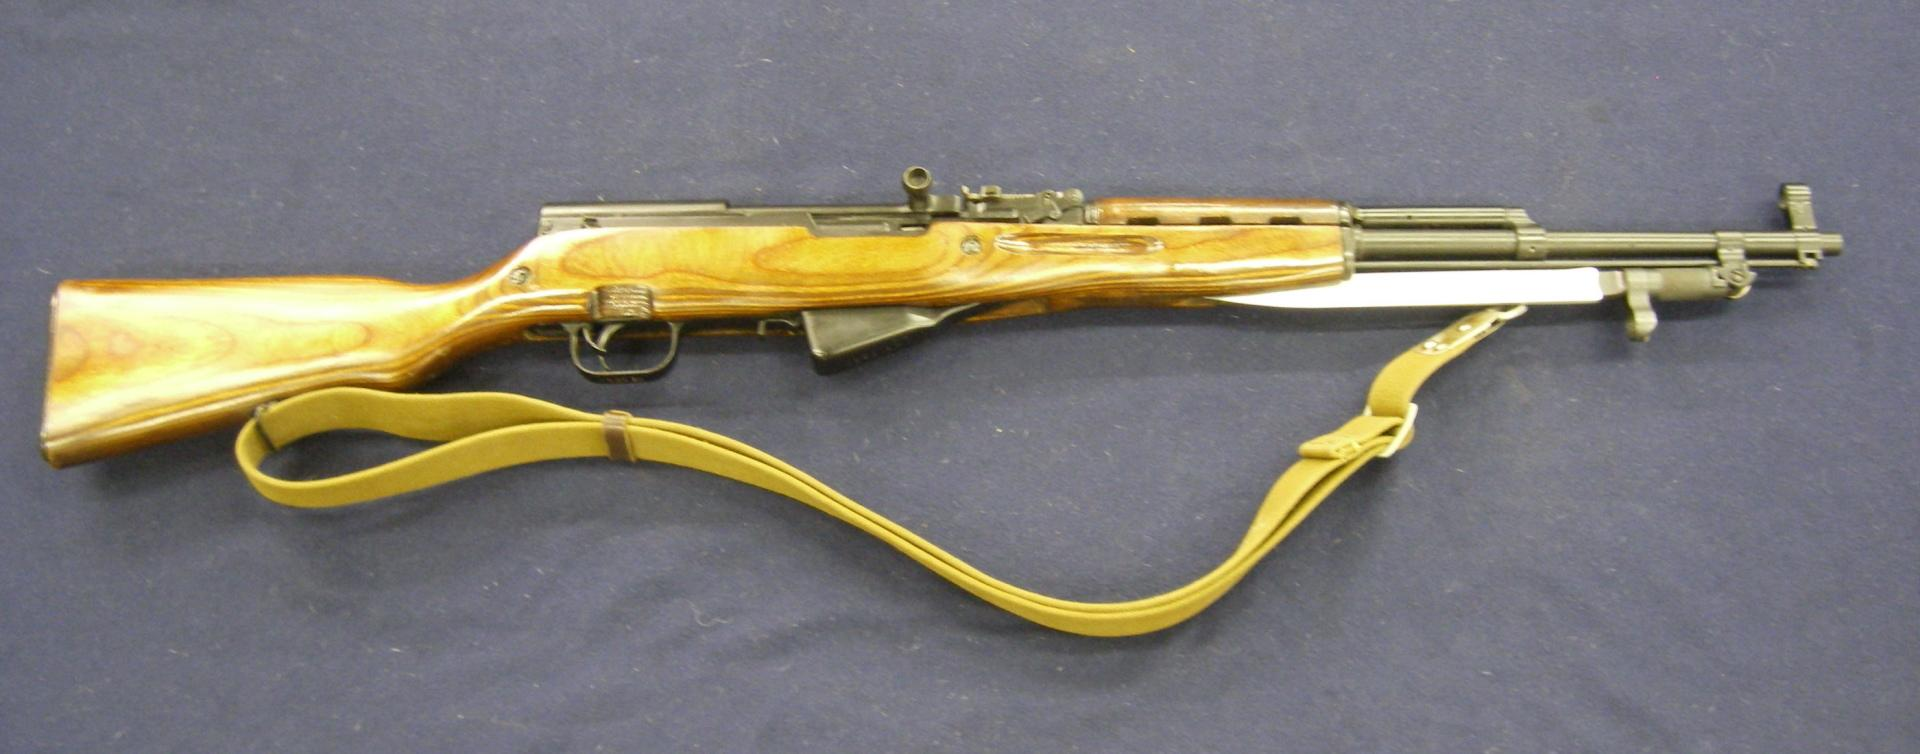 SKS Rifle wallpapers HD quality